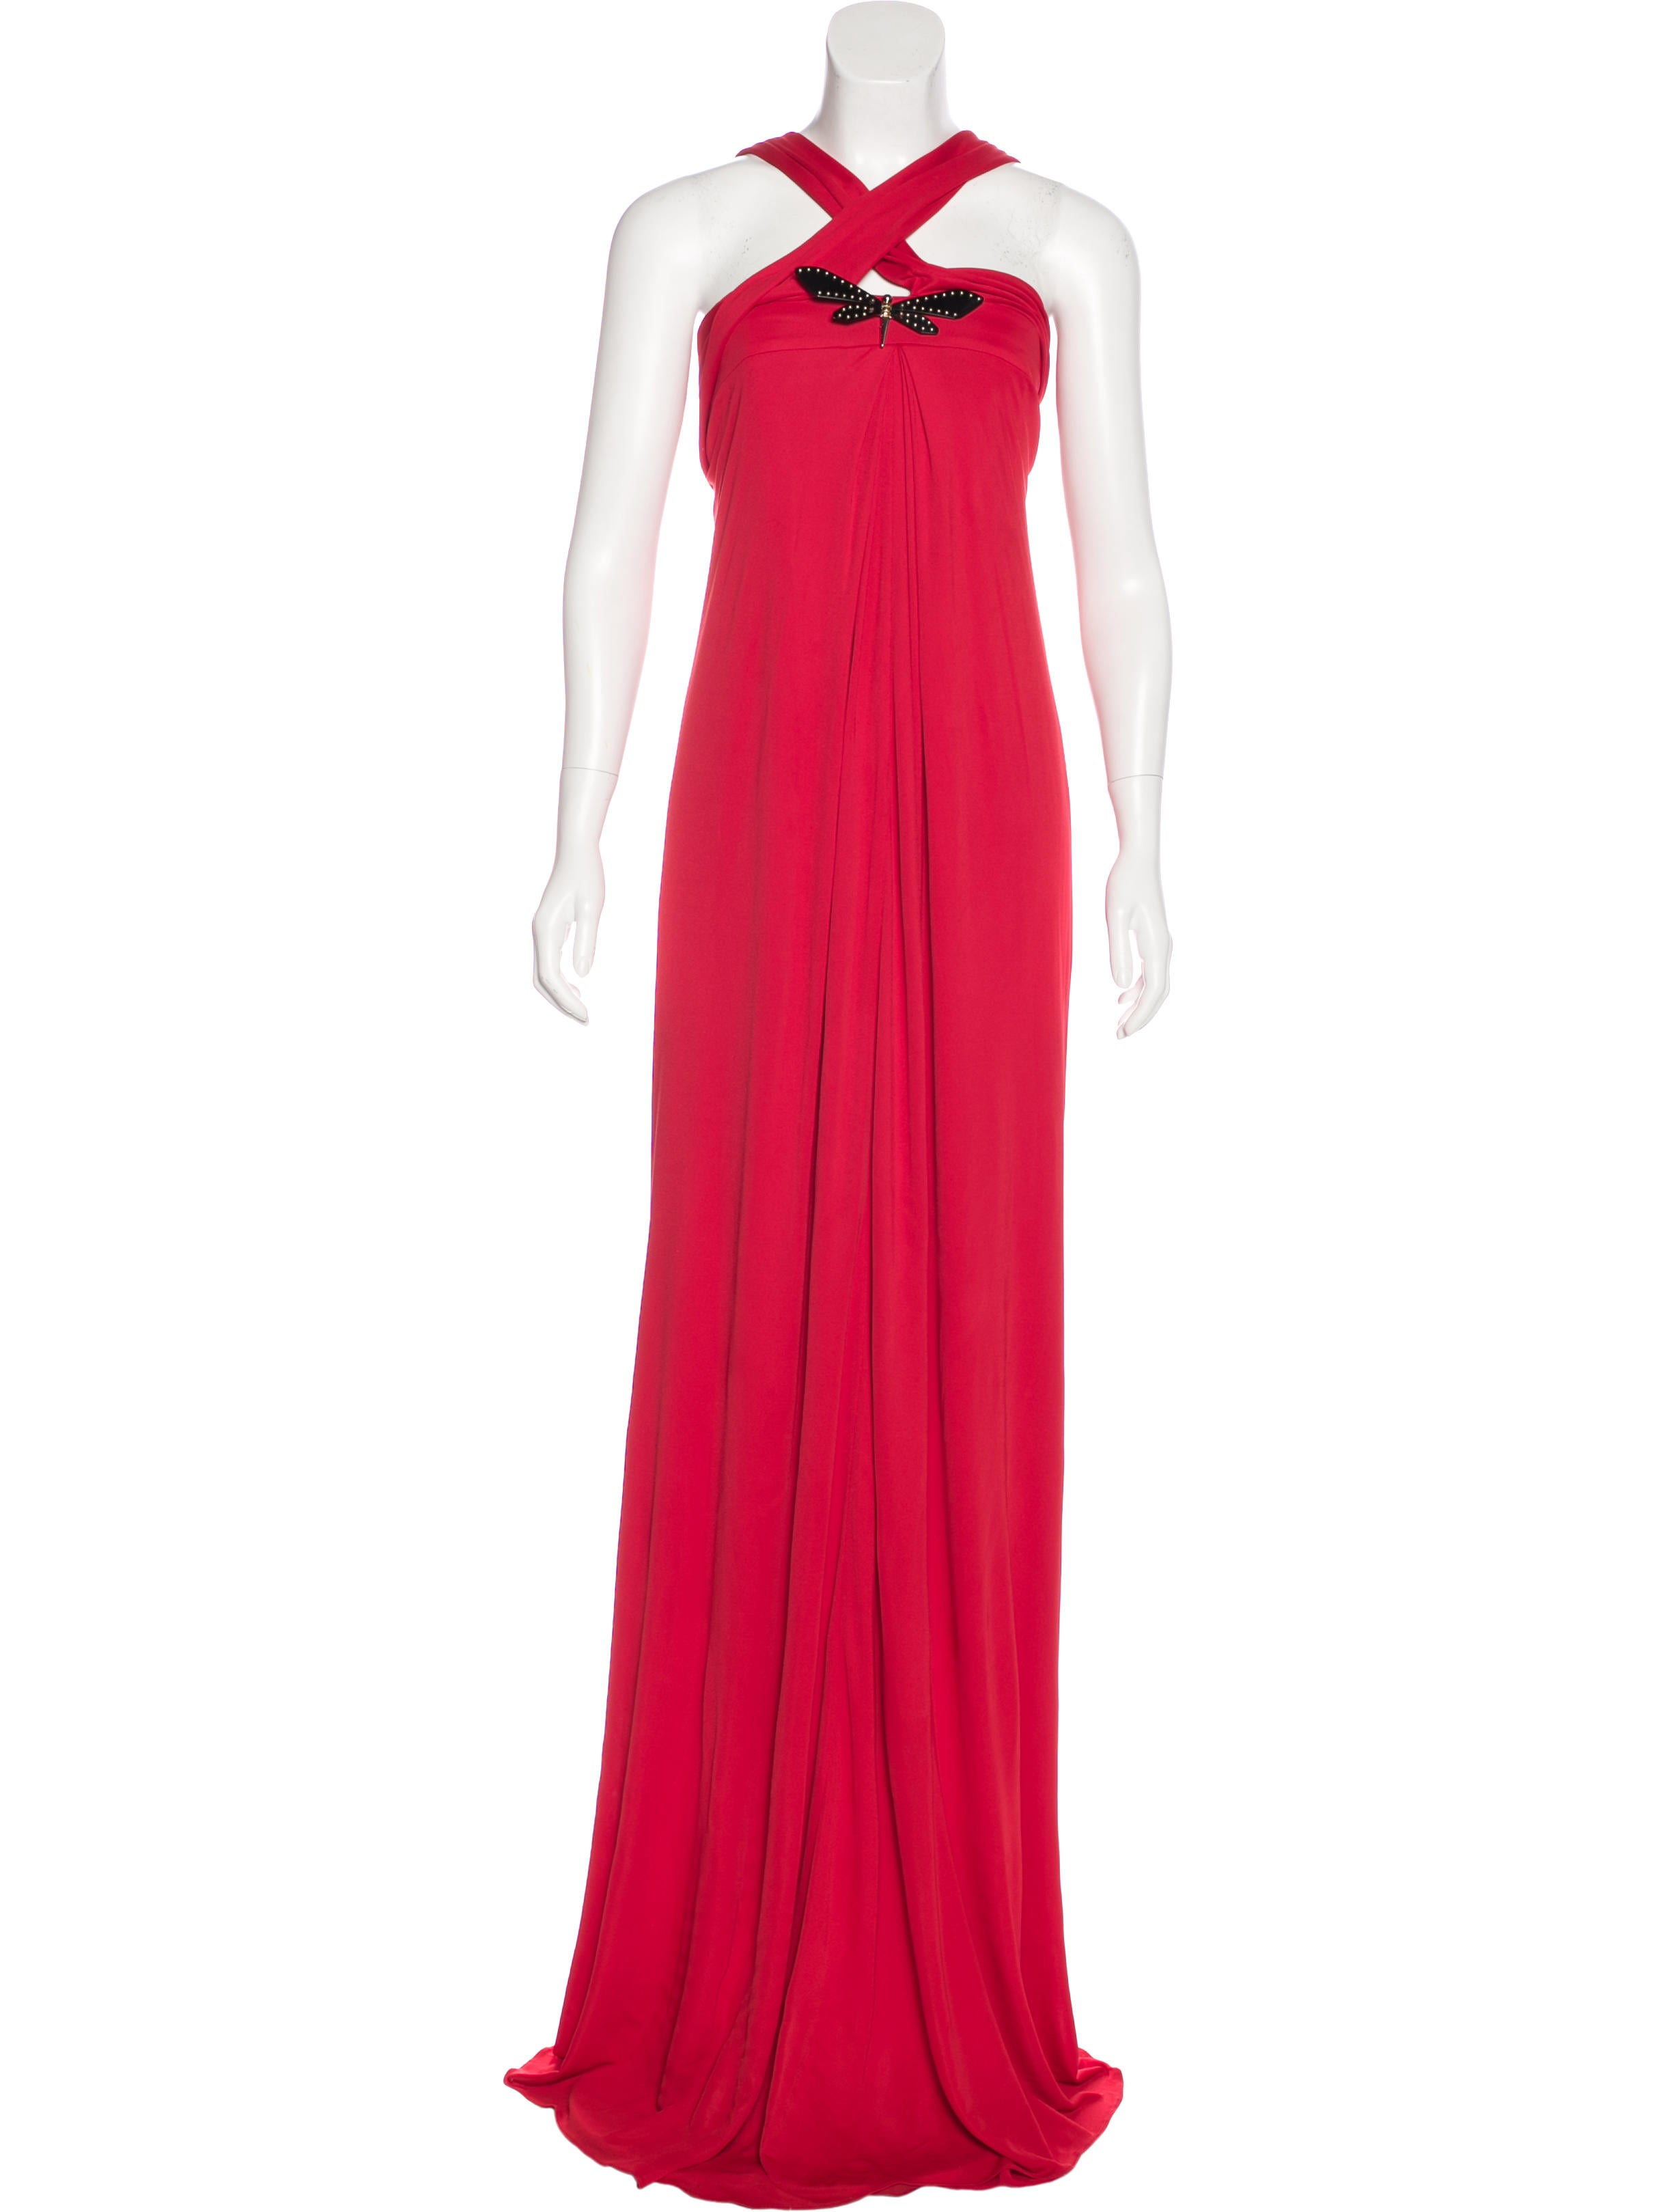 Gucci Embellished Evening Dress - Clothing - GUC163295 | The RealReal